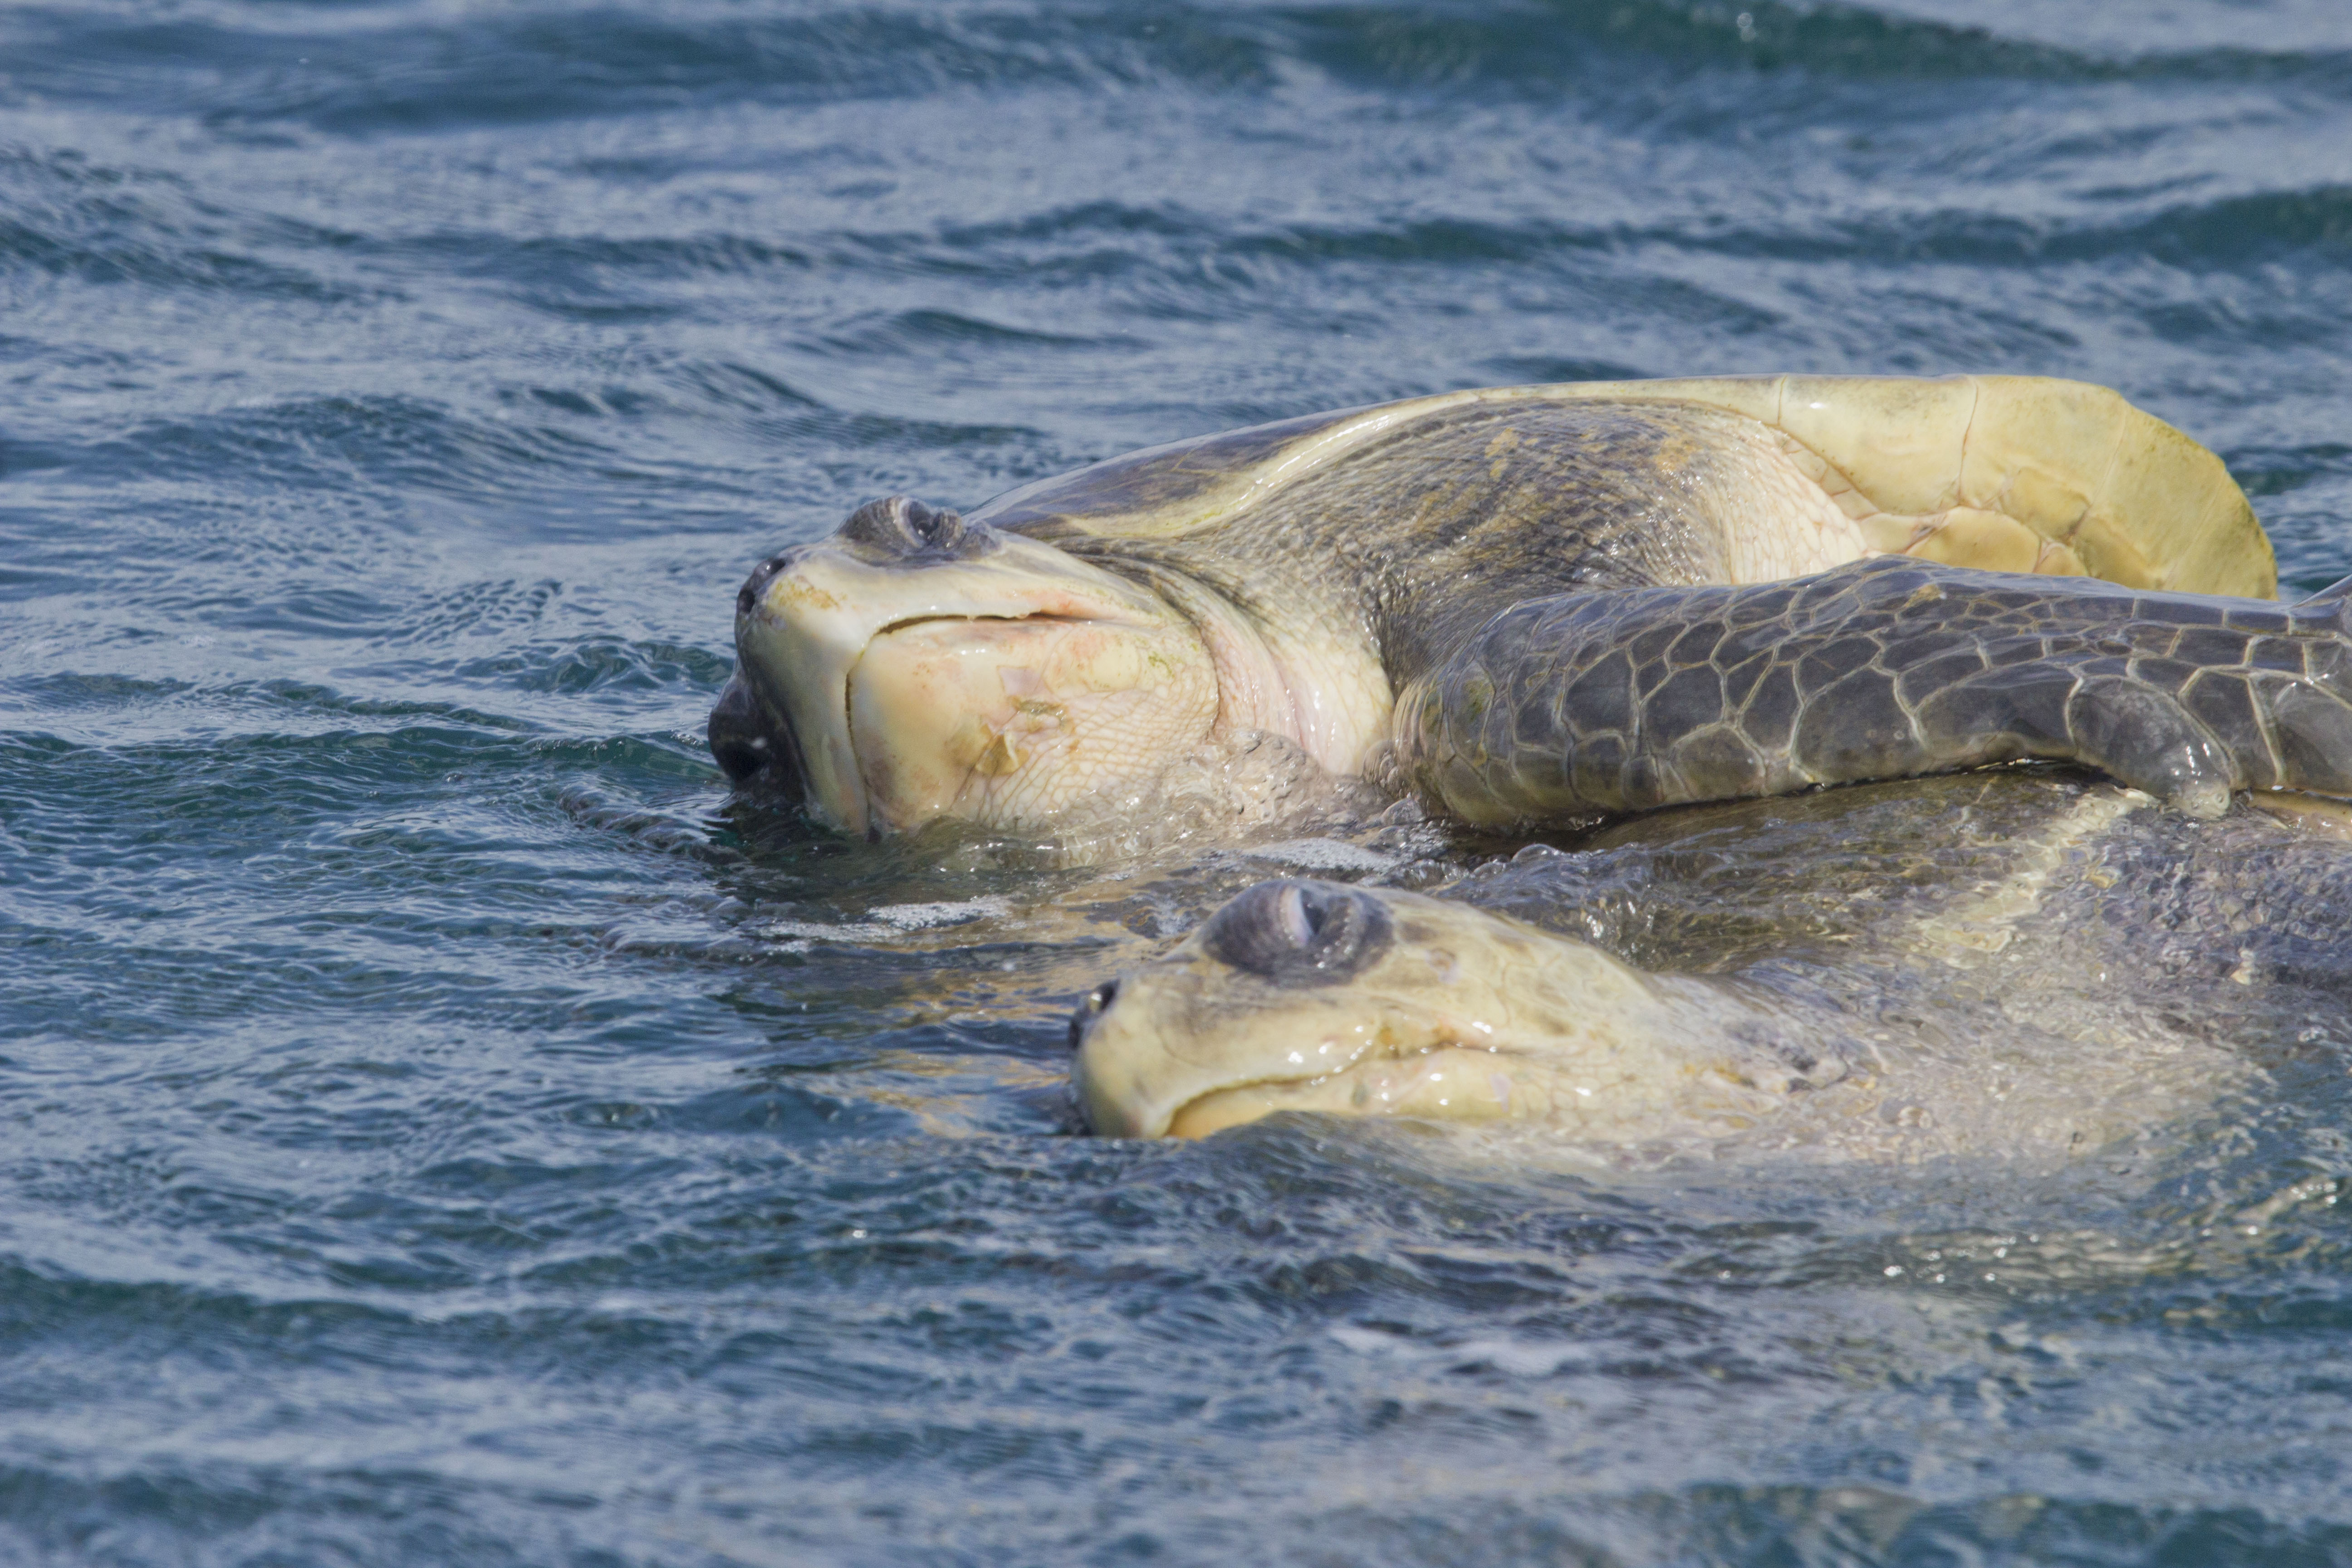 A pair of Olive Ridely sea turtles mating near La Flor beach (Play LaFlor), Nicaragua. © Hal Brindley .com